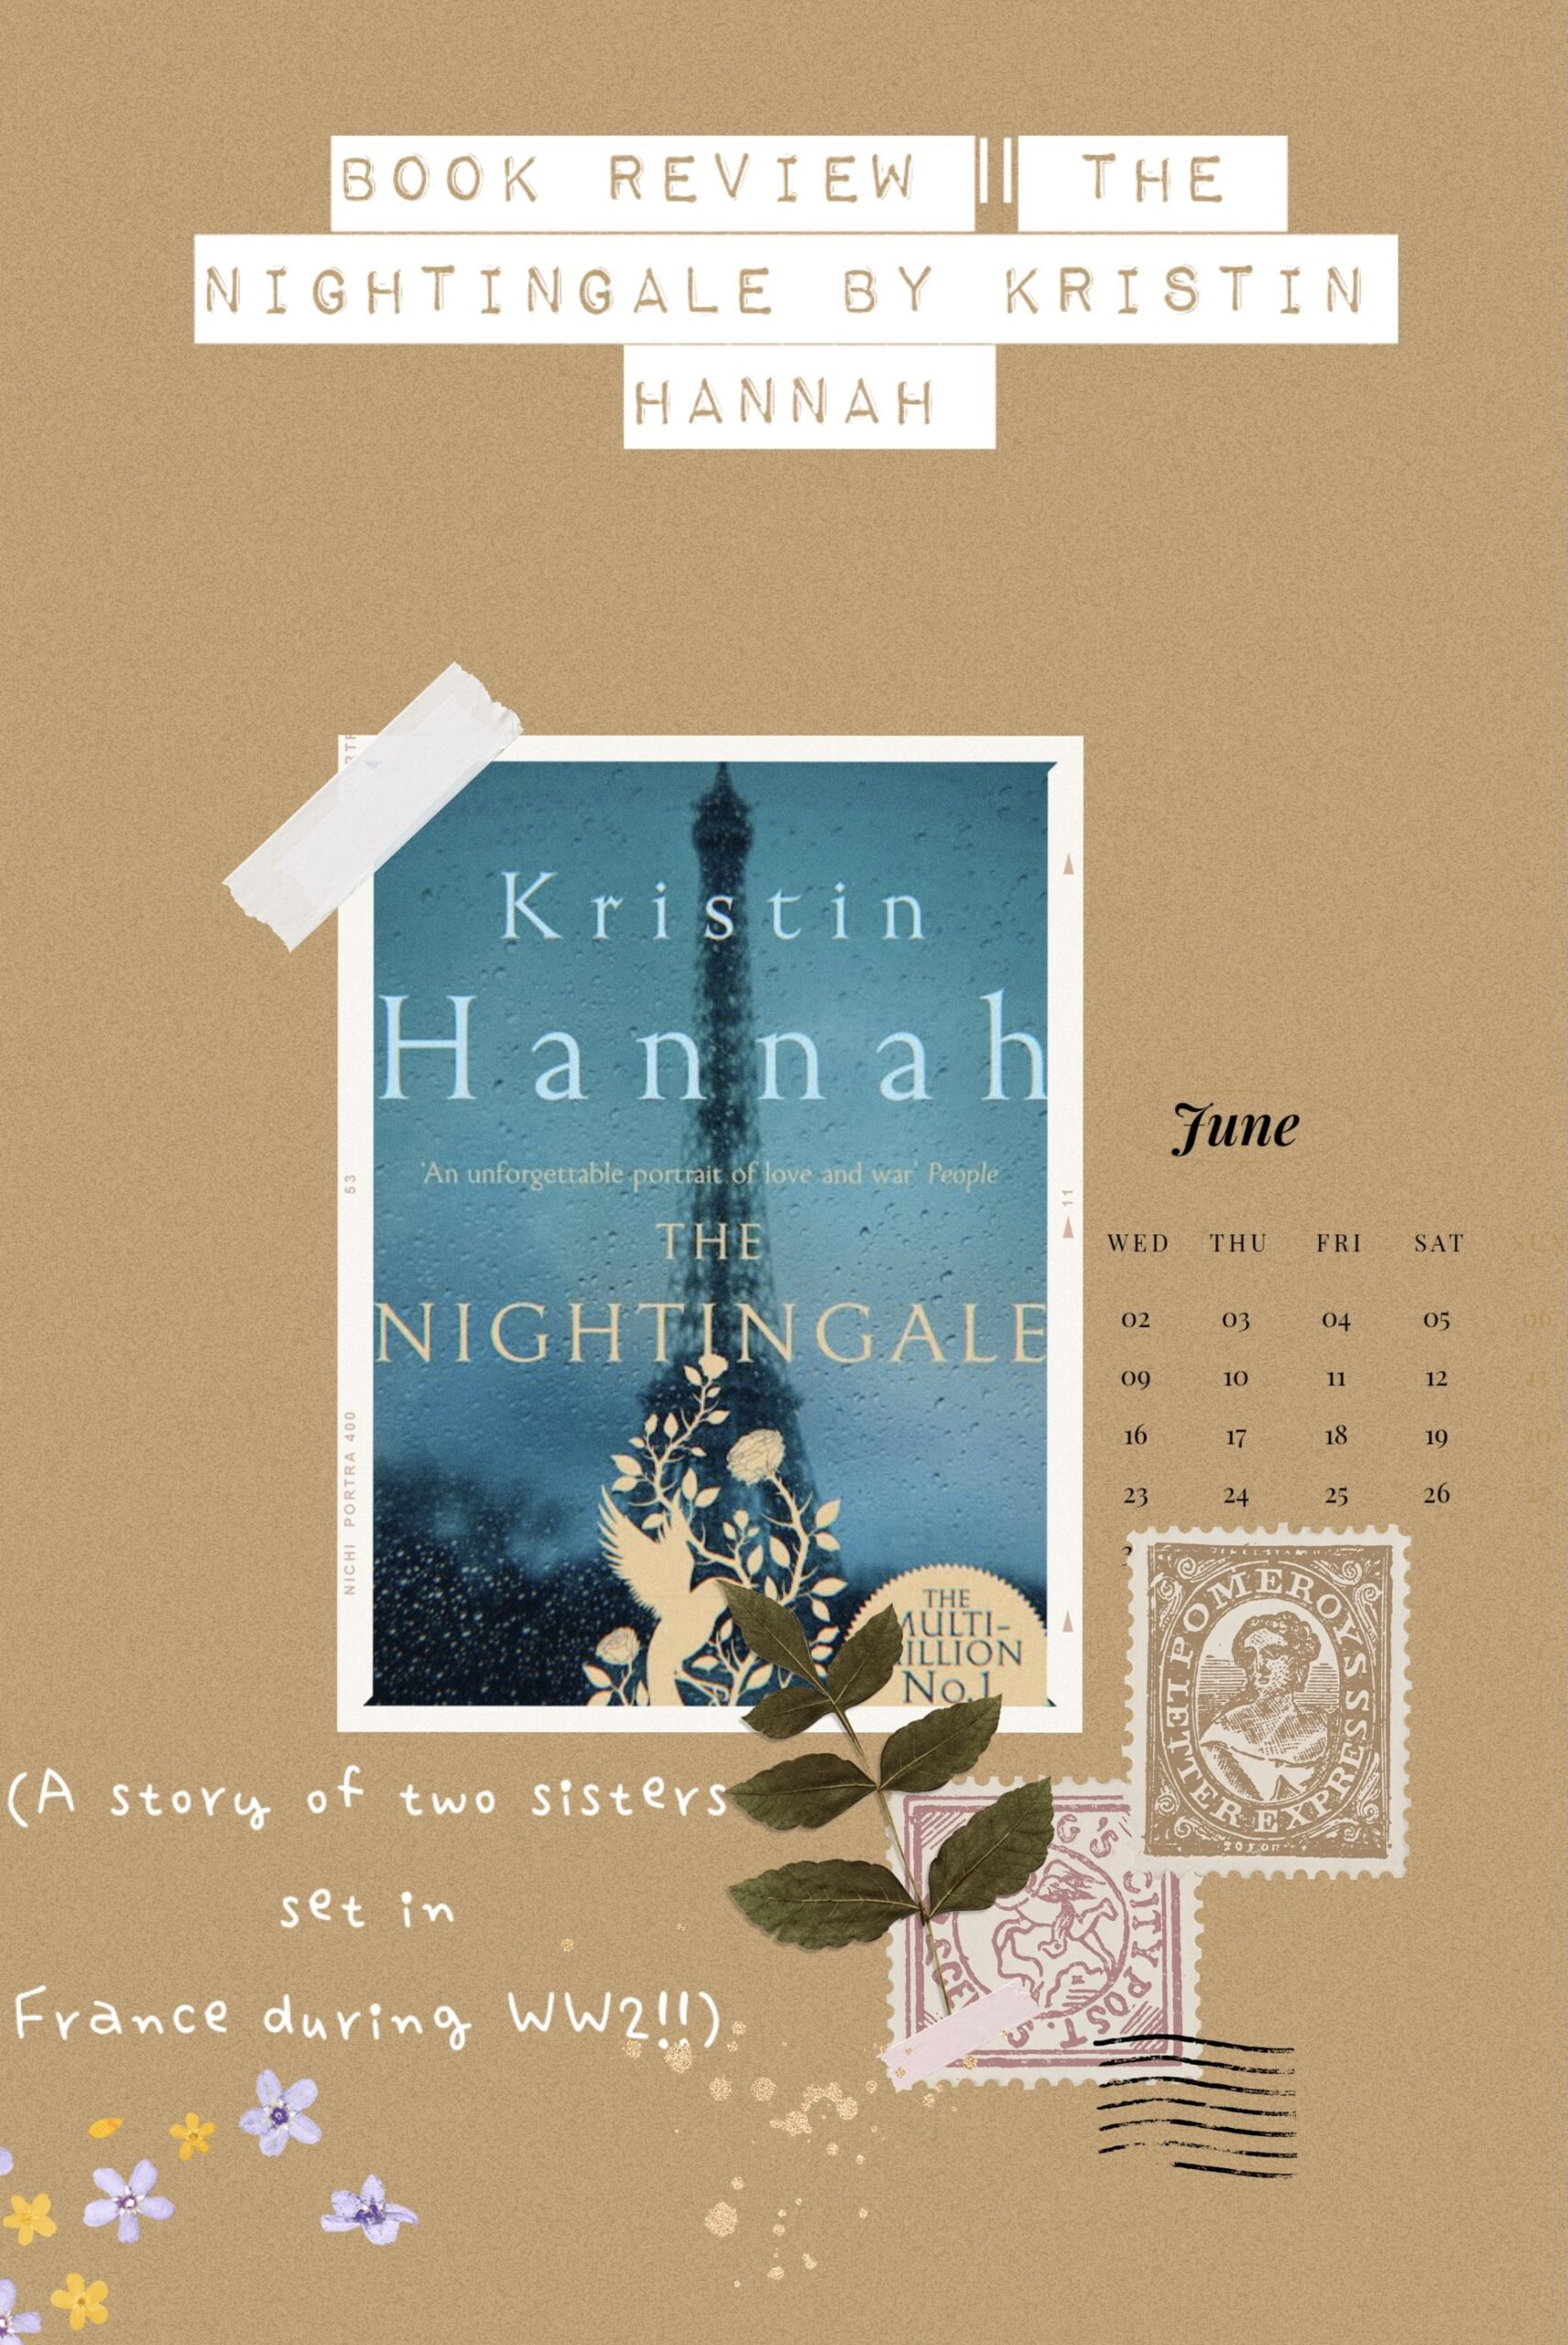 Book Review The Nightingale by Kristin Hannah